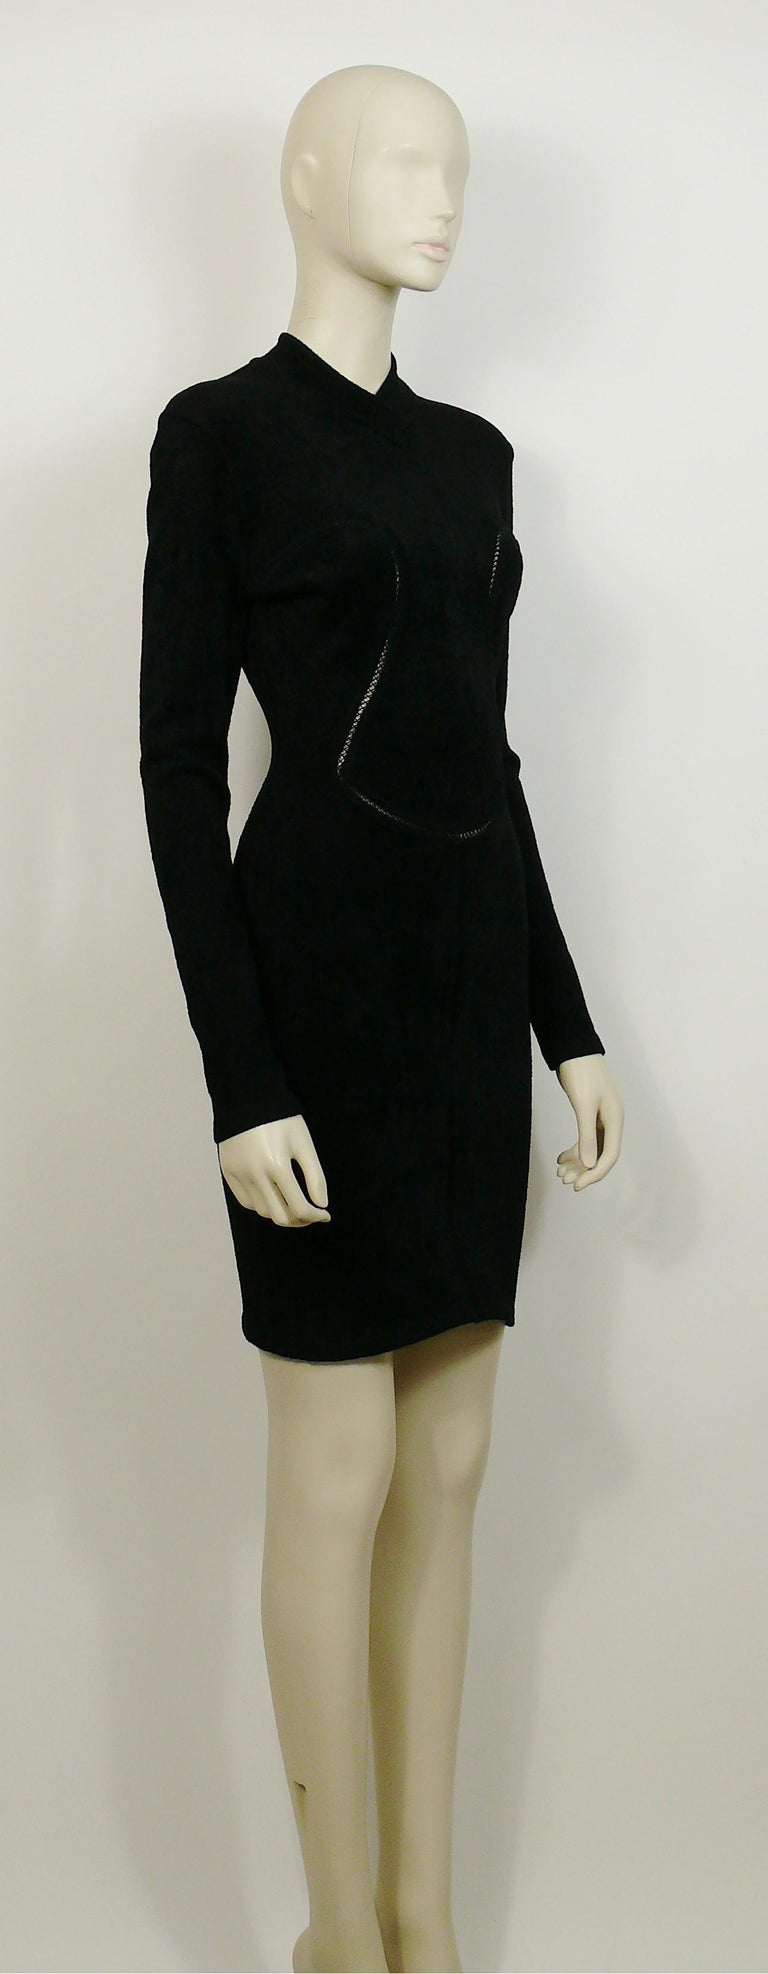 Azzedine Alaia Vintage Bodycon Knit Black Dress with Openwork Details F/W 1991 In Excellent Condition For Sale In Nice, FR